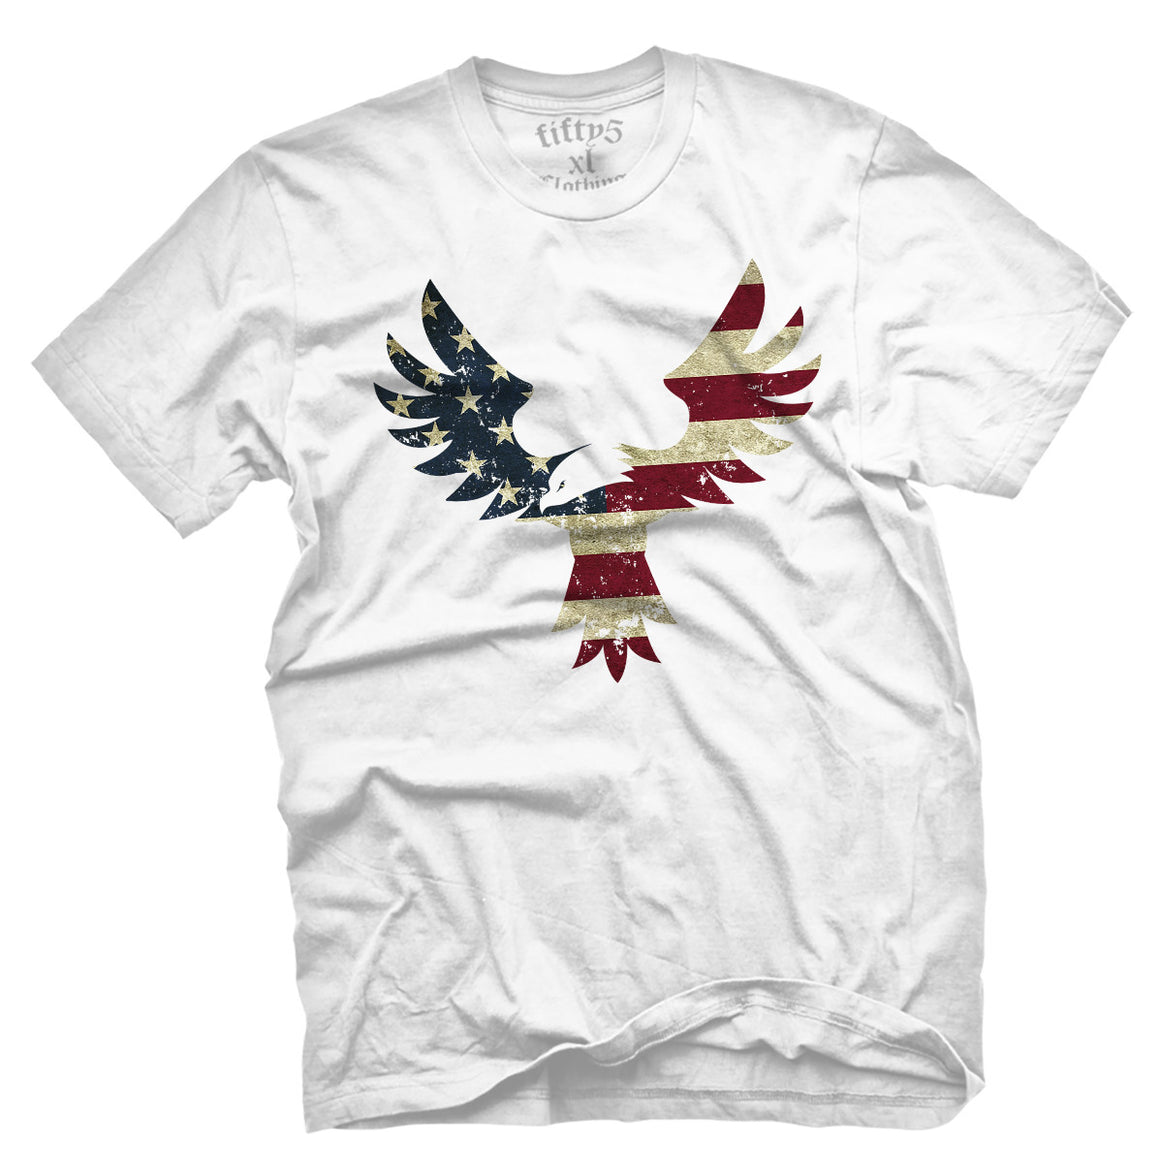 Fifty5 Clothing American Eagle Men's T Shirt